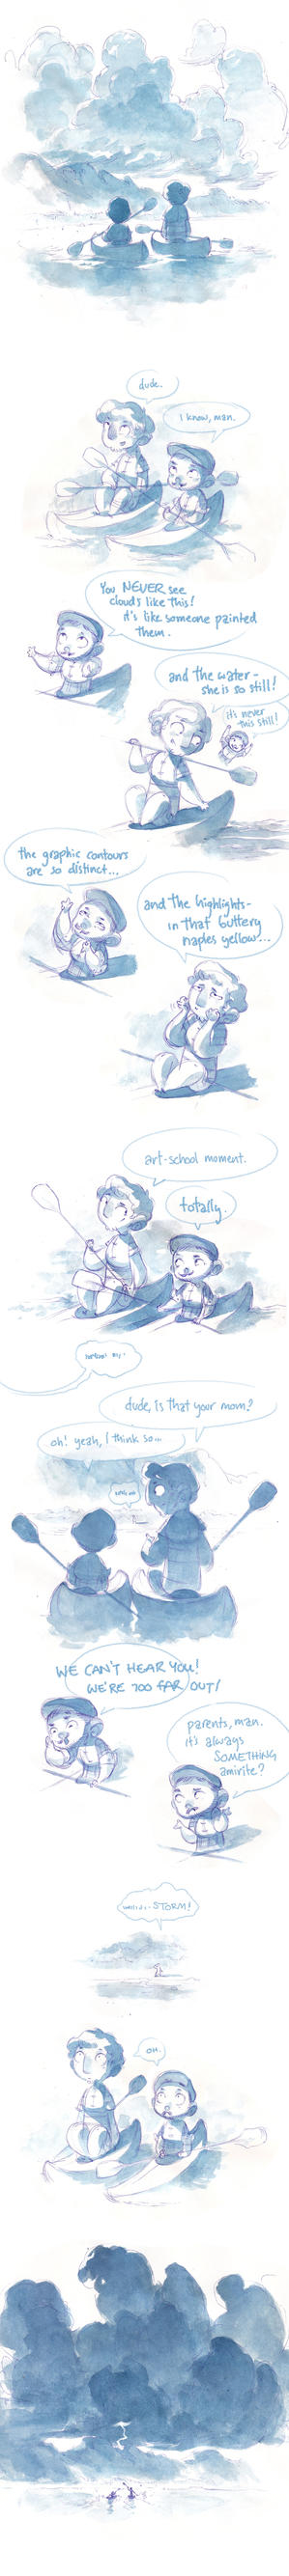 Watercolor Comic - Clouds by nicholaskole